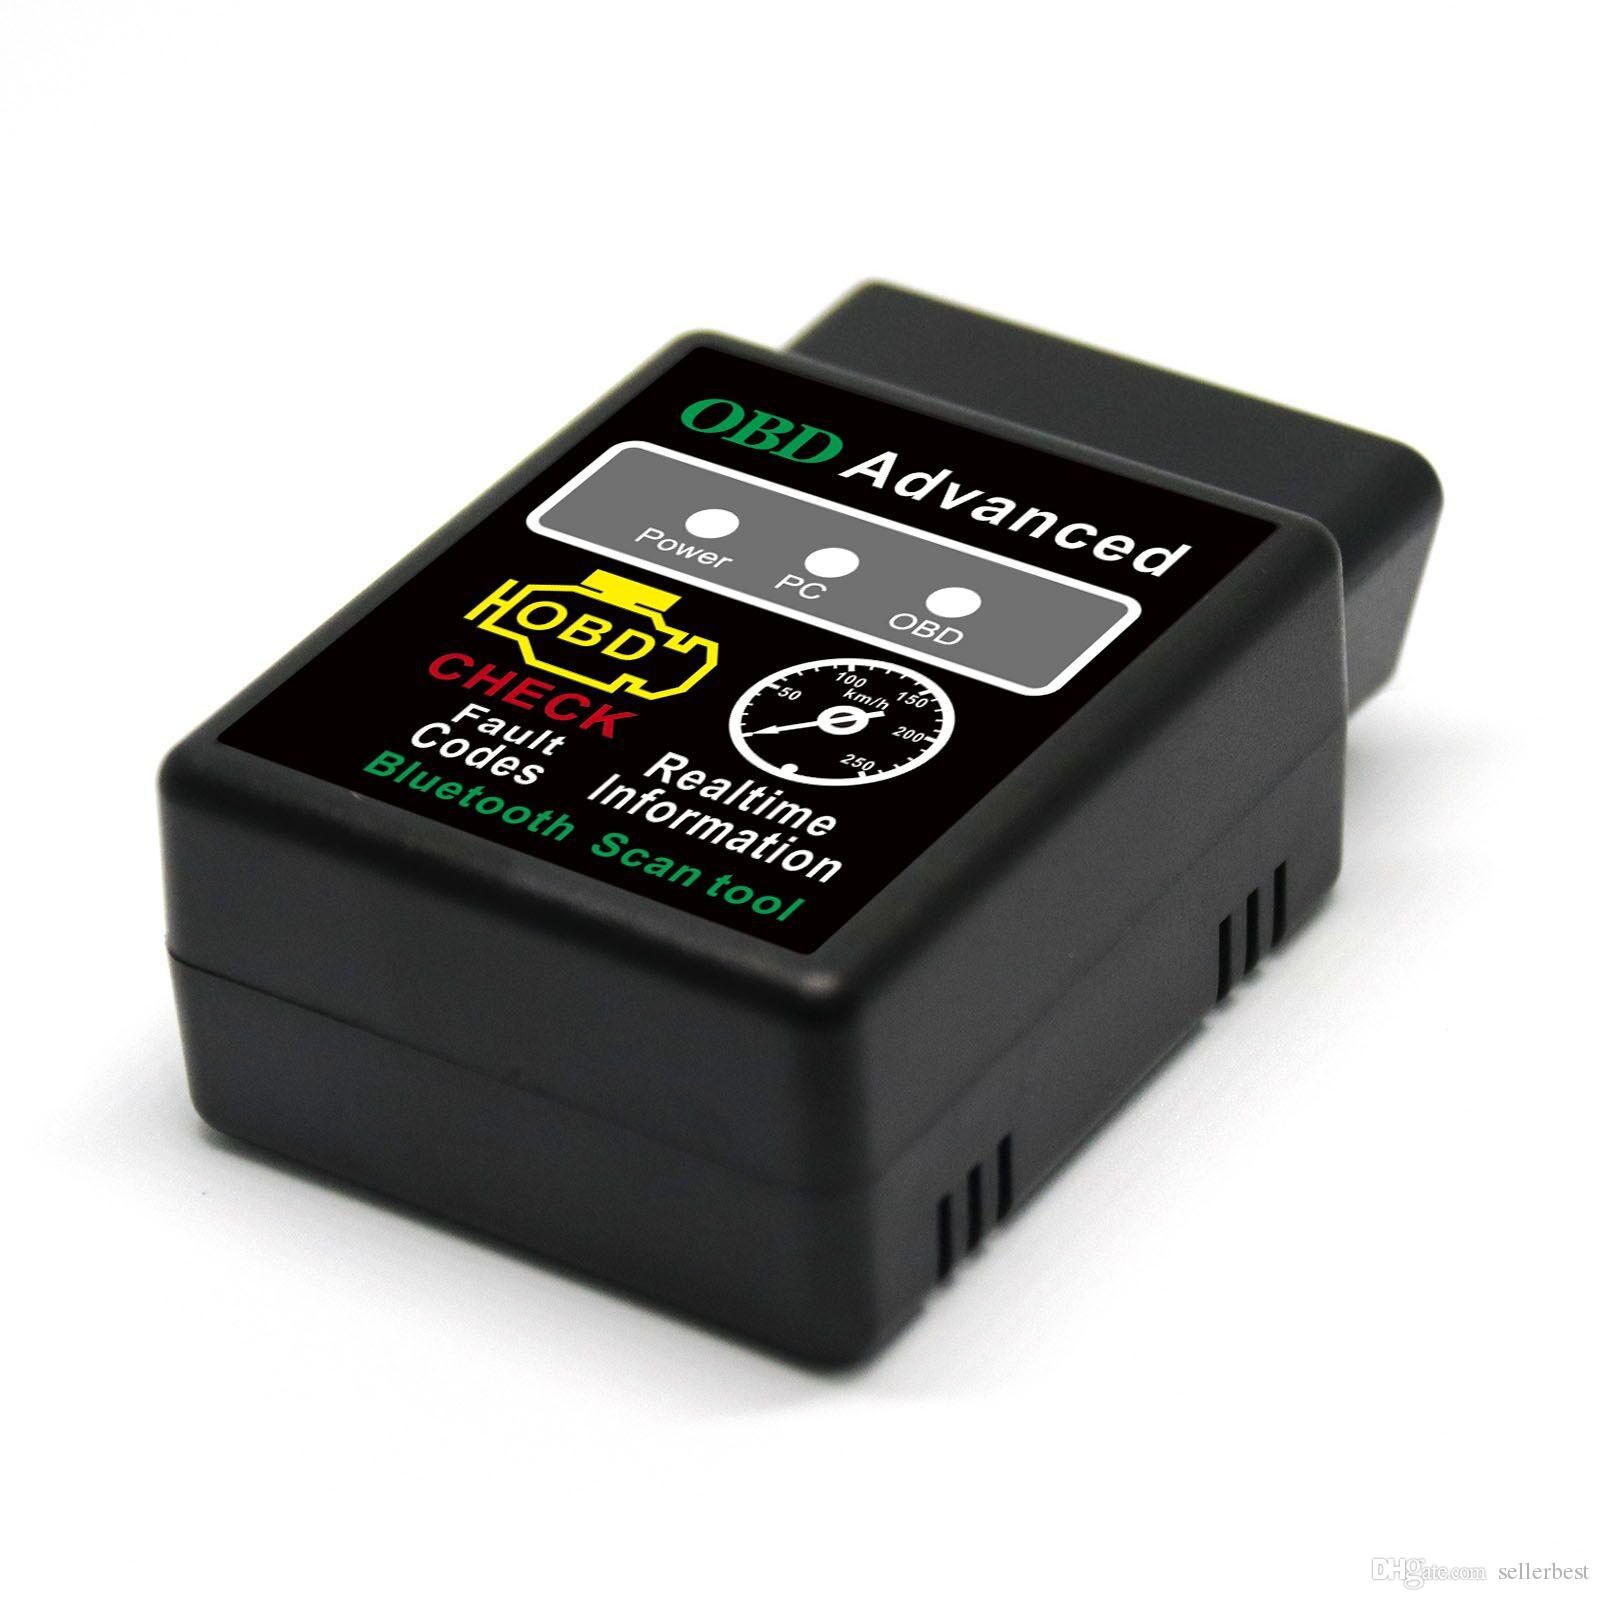 VGATE-Scan-Werkzeugqualität A + V1.5 Version 1.5 Super OBD-Scan Mini ELM327 Bluetooth ELM 327 OBDII OBD2 Auto Diagnostic InterCace